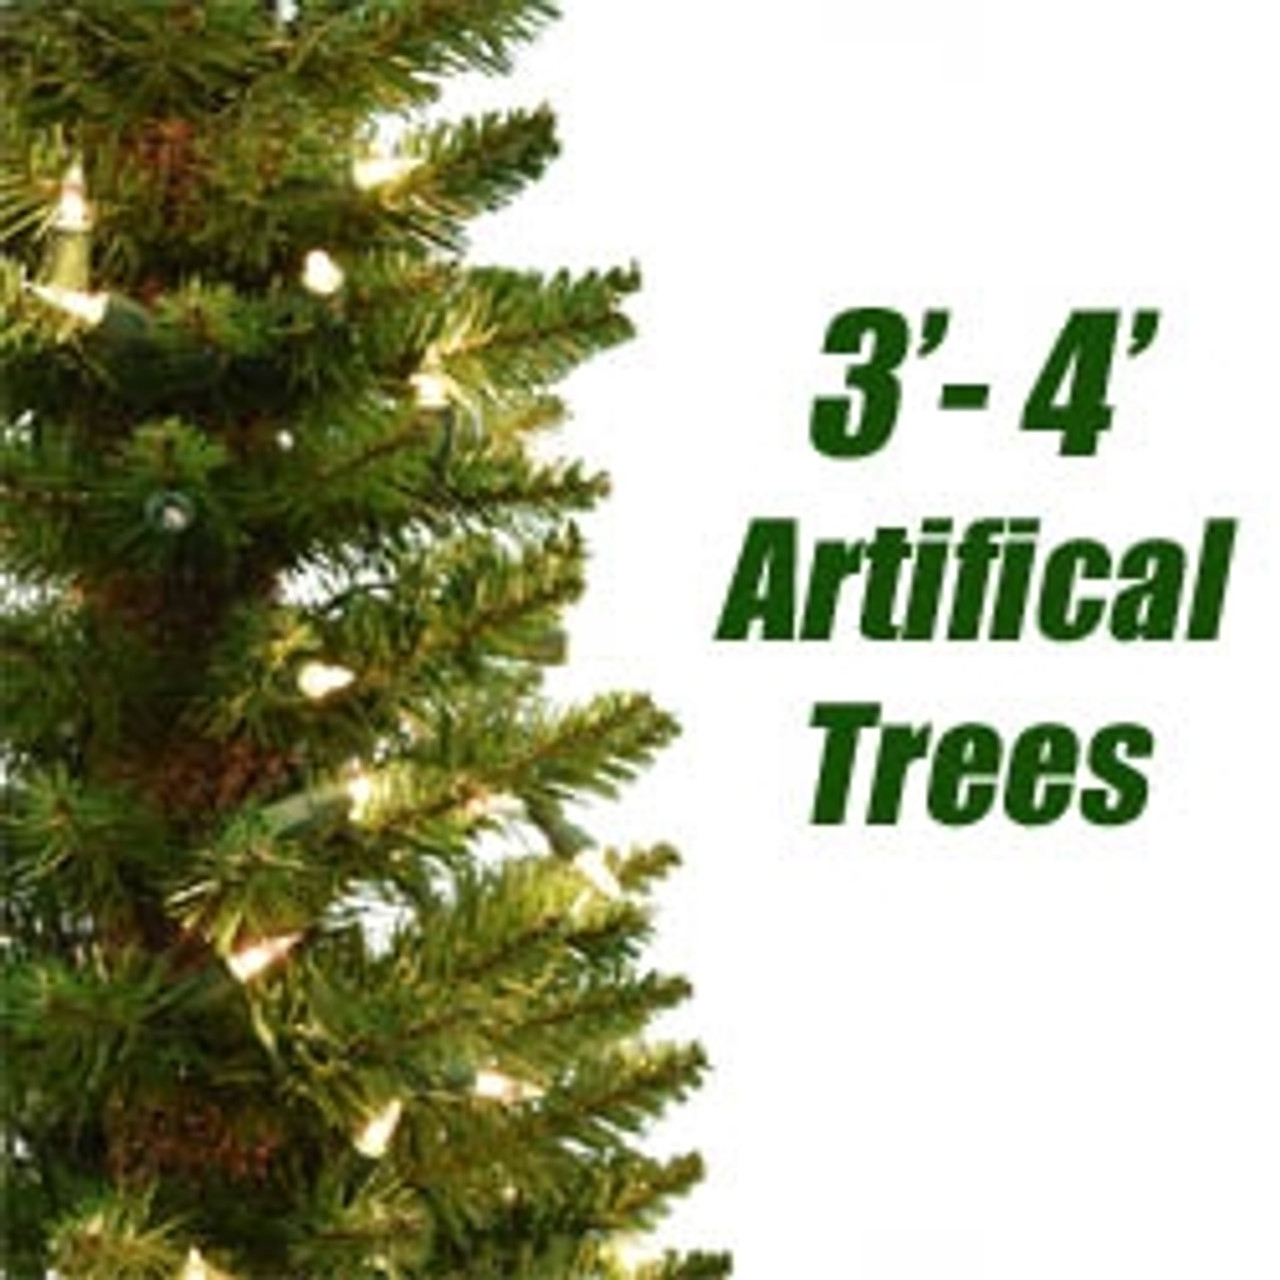 3 Foot Prelit Christmas Trees.Artificial Pre Lit Christmas Trees For Sale 3 Feet And 4 Feet